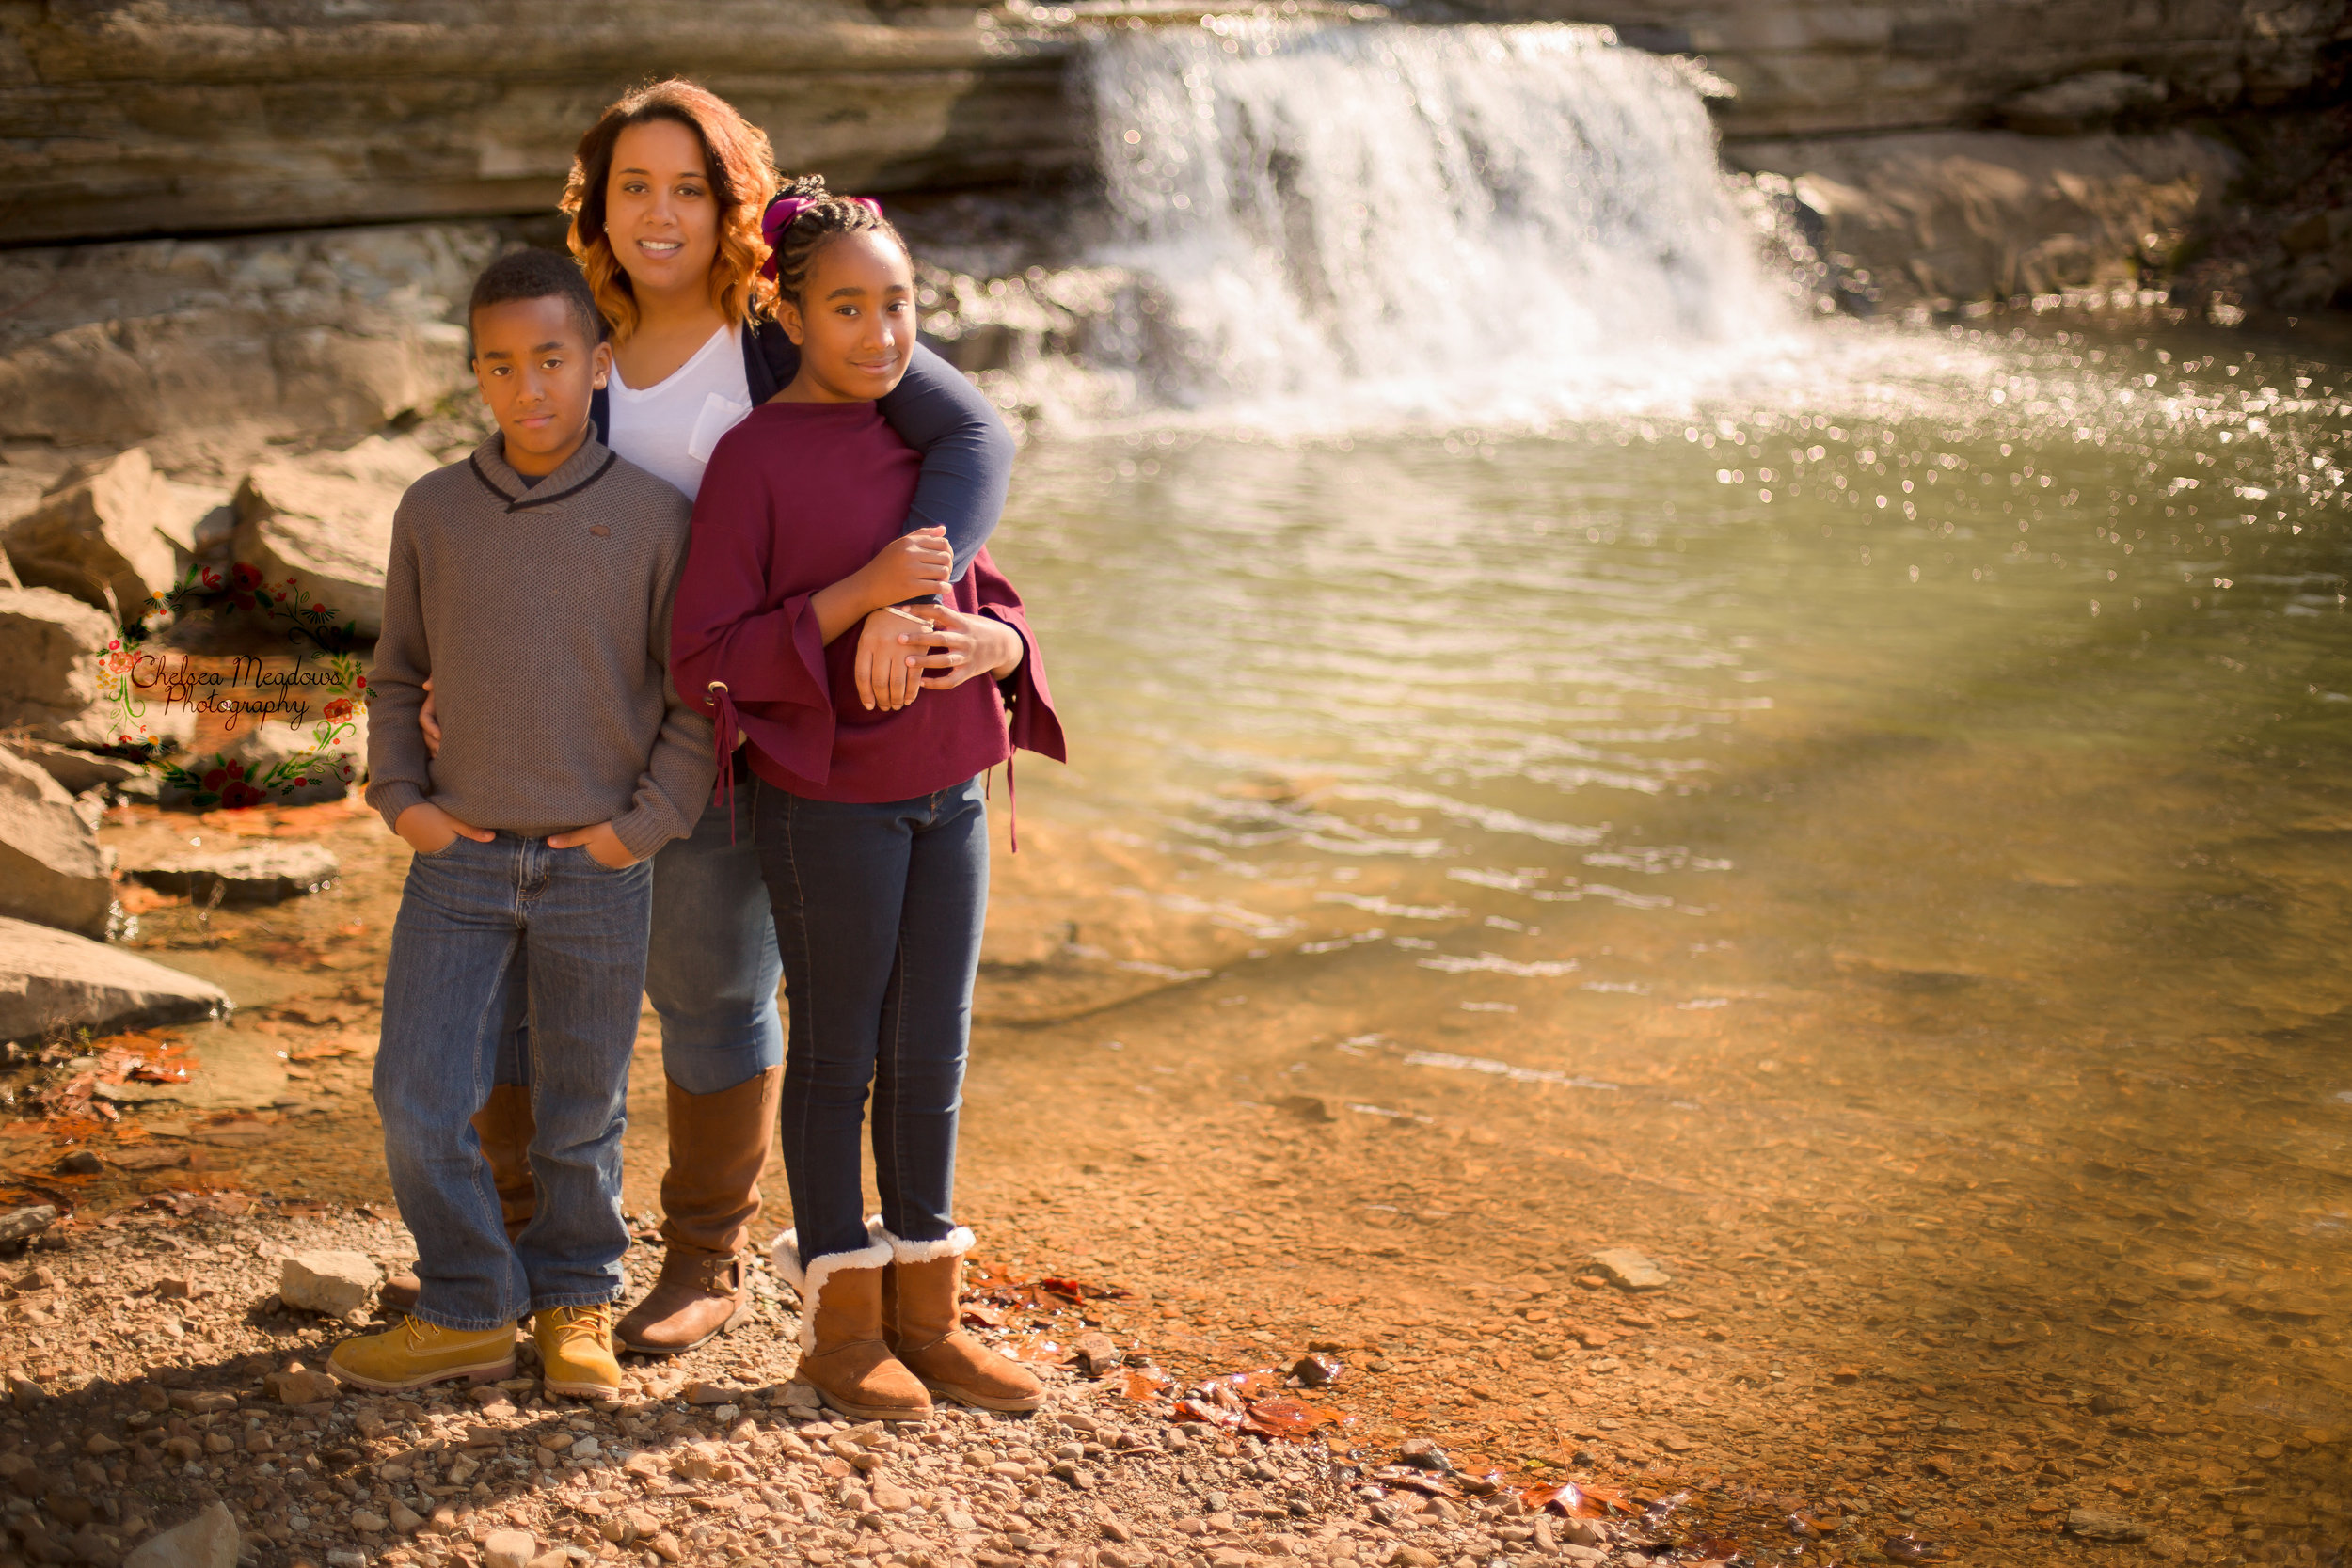 Nelson Family - Nashville Family Photographer - Chelsea Meadows Photography (37).jpg